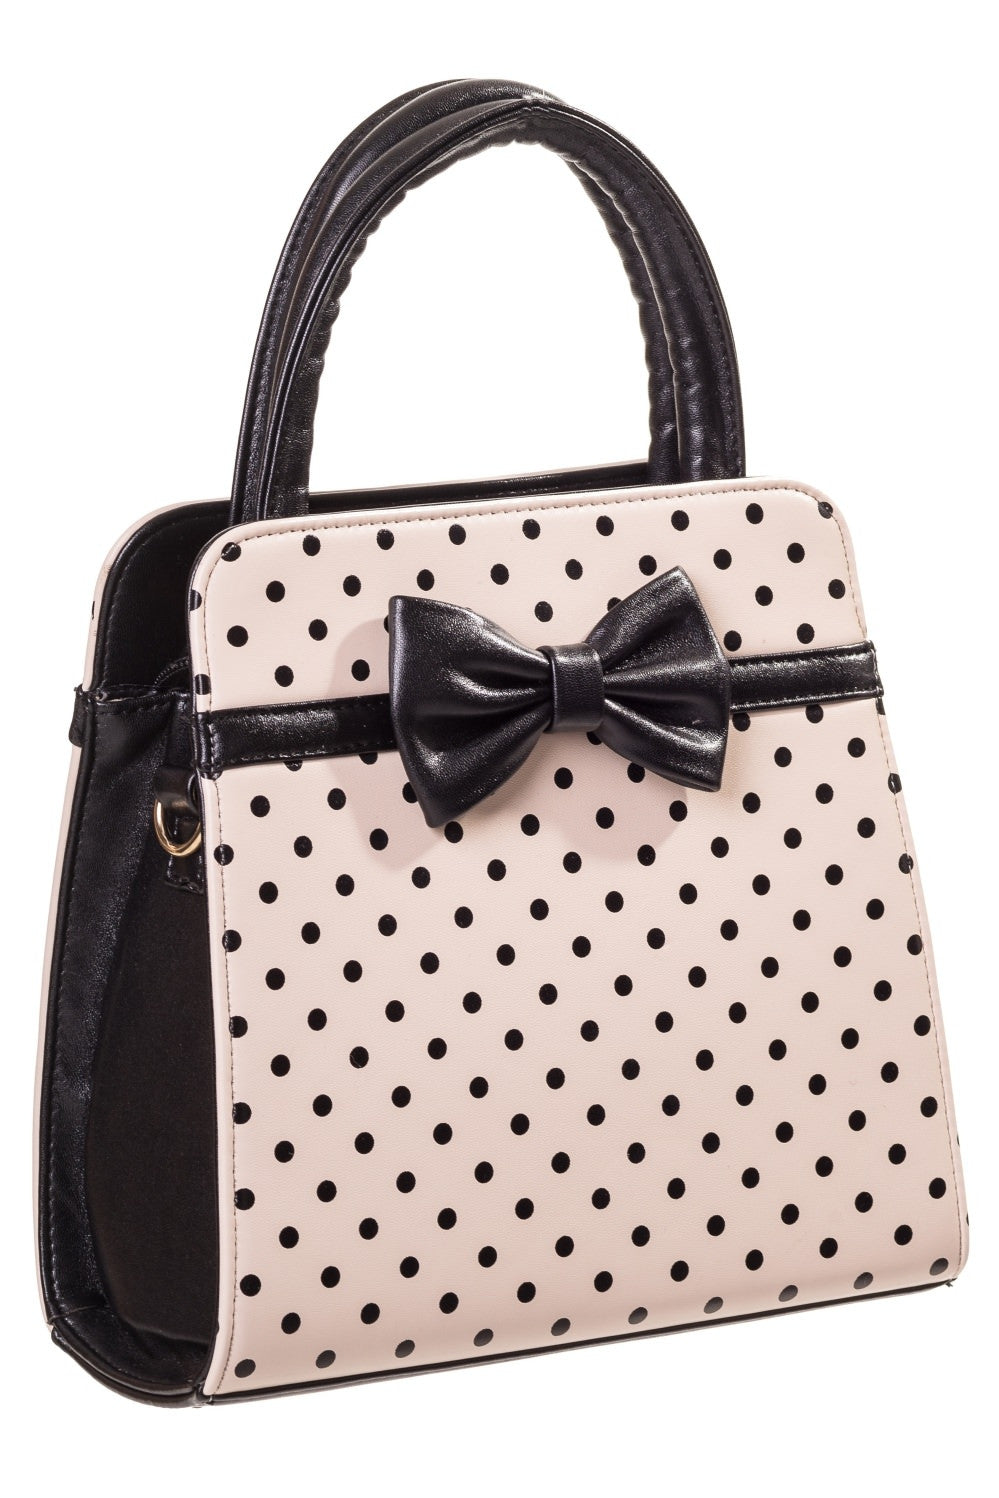 Banned - Beige with Black Polka Dots Vintage Inspired Handbag